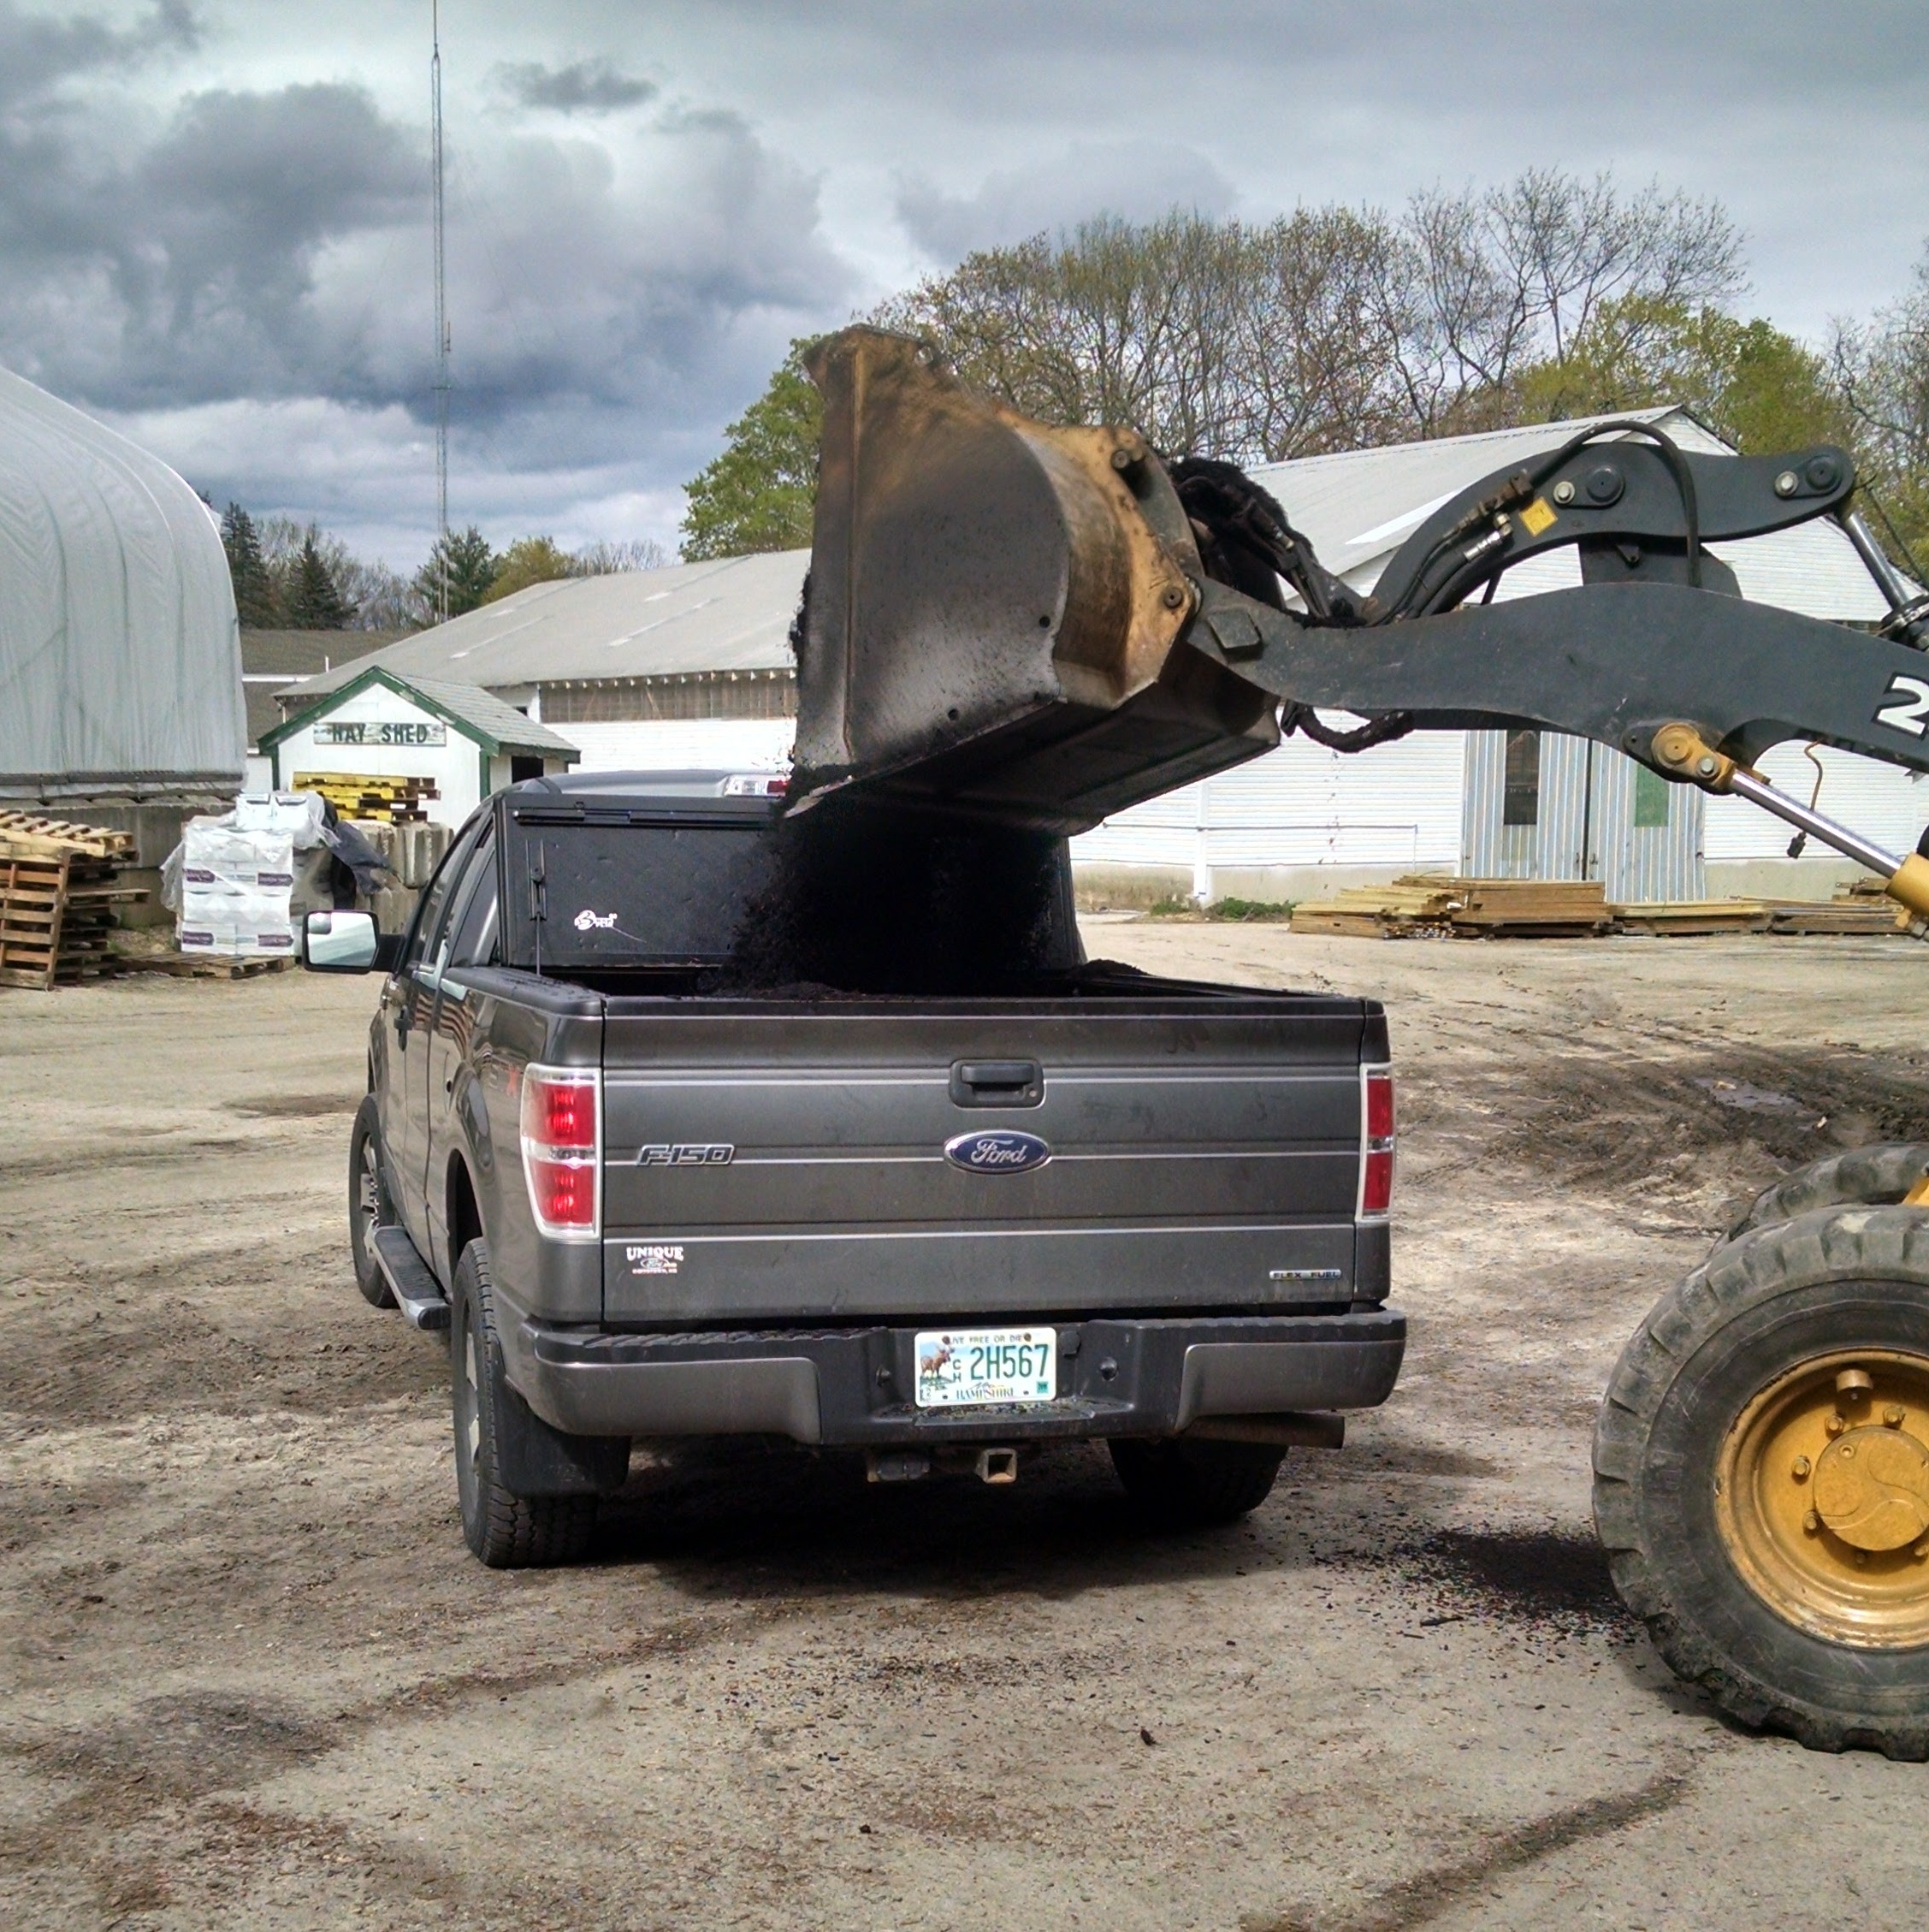 Just grabbing one of many loads of mulch. #trucklife